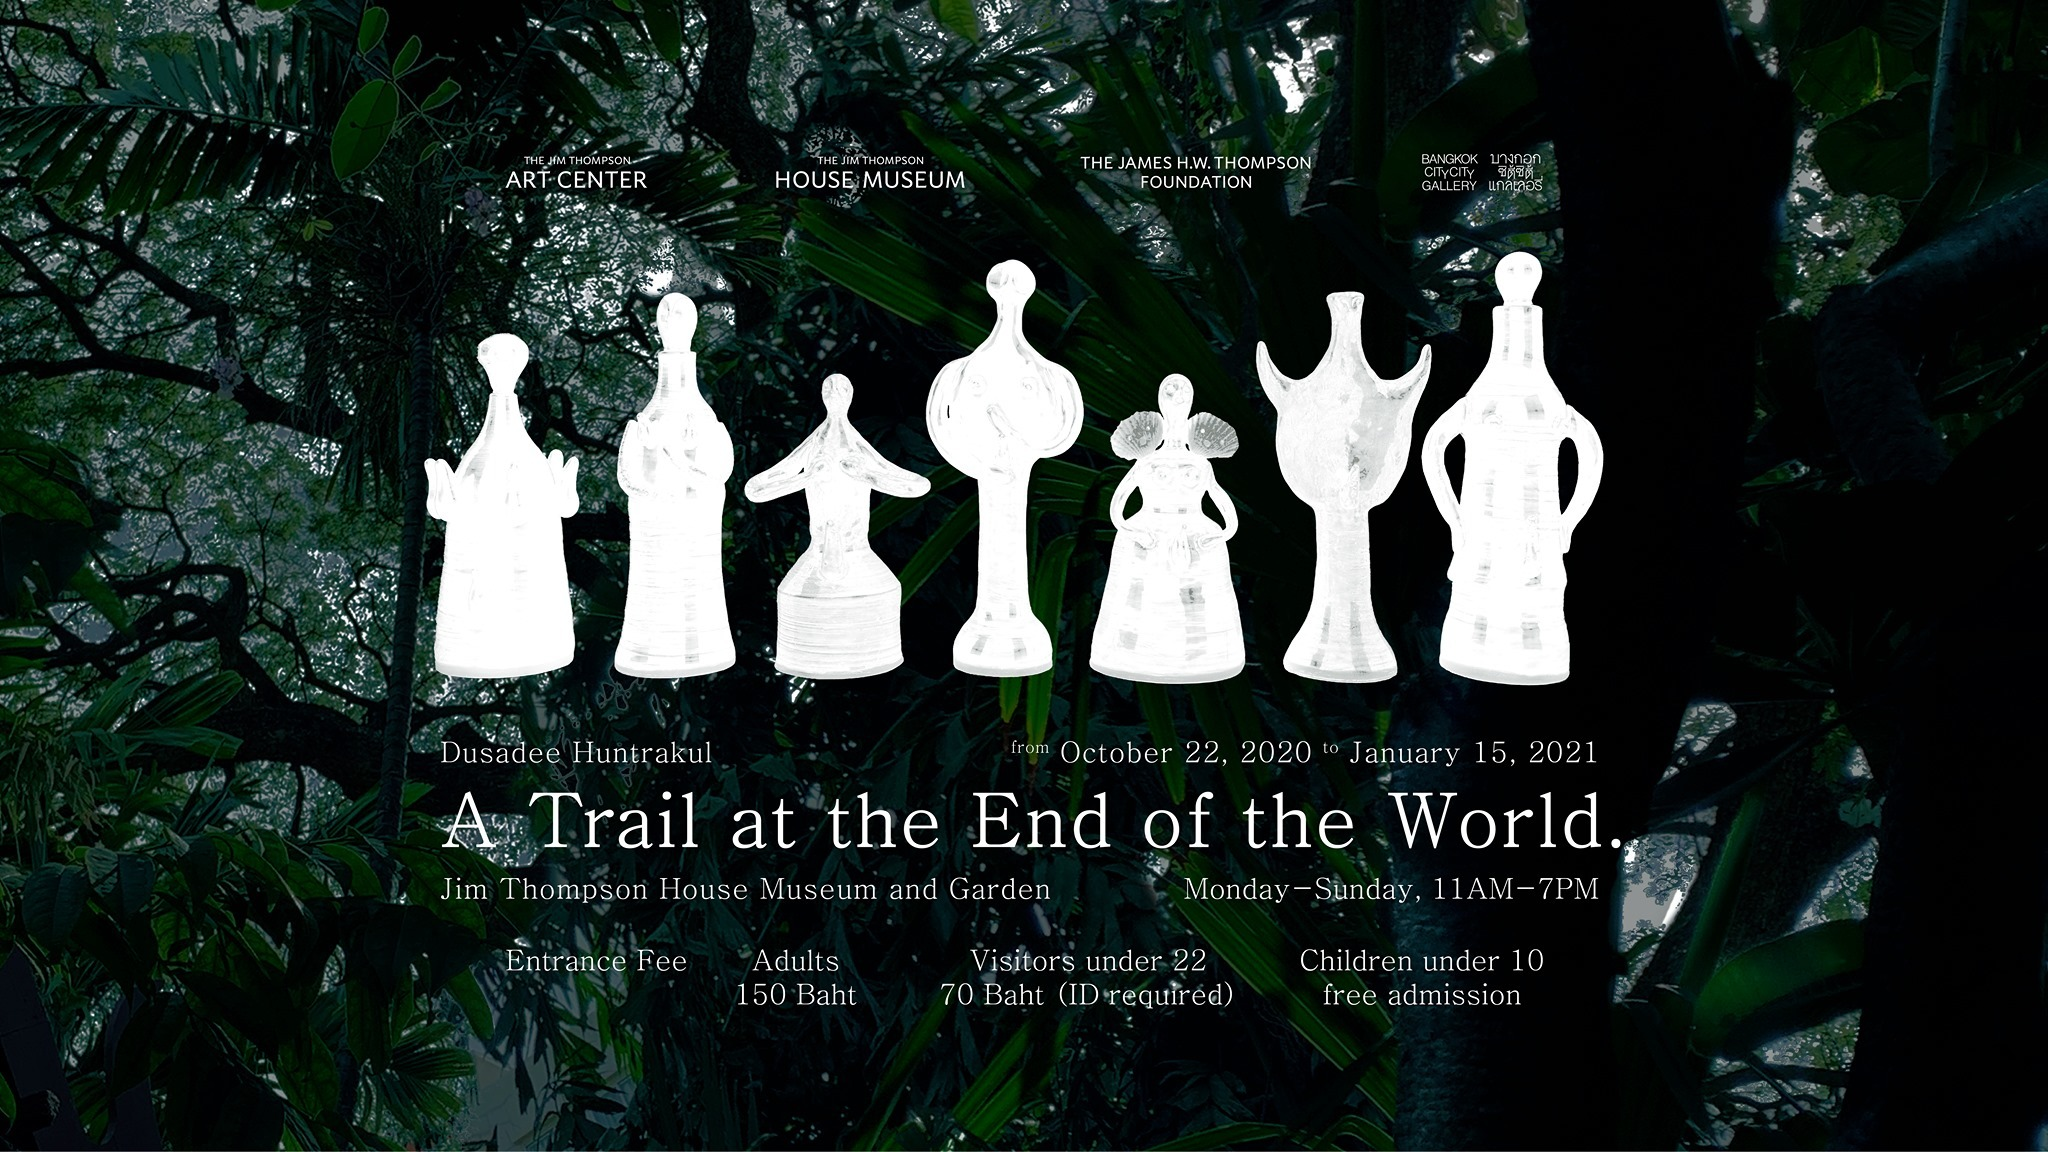 A trail at the end of the world